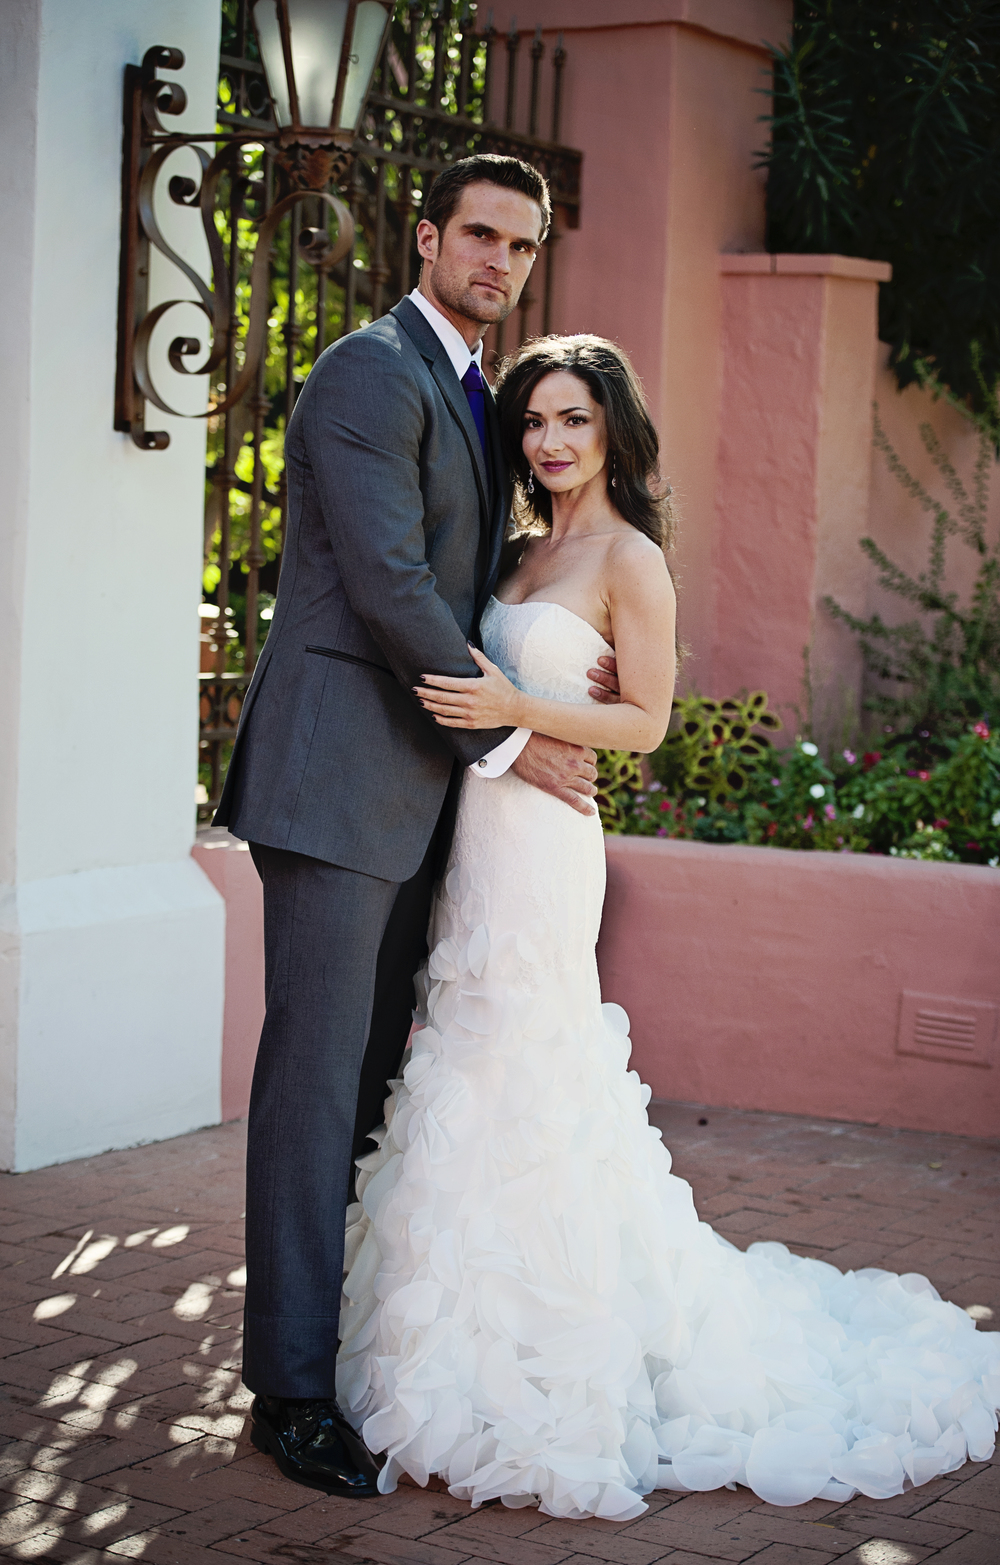 First Look Wedding Photos.    Destination Wedding Planner:   Andrea Eppolito Events   |  Historical Wedding Venue:   The Arizona Inn   |  Photography:  Raylene Streuber